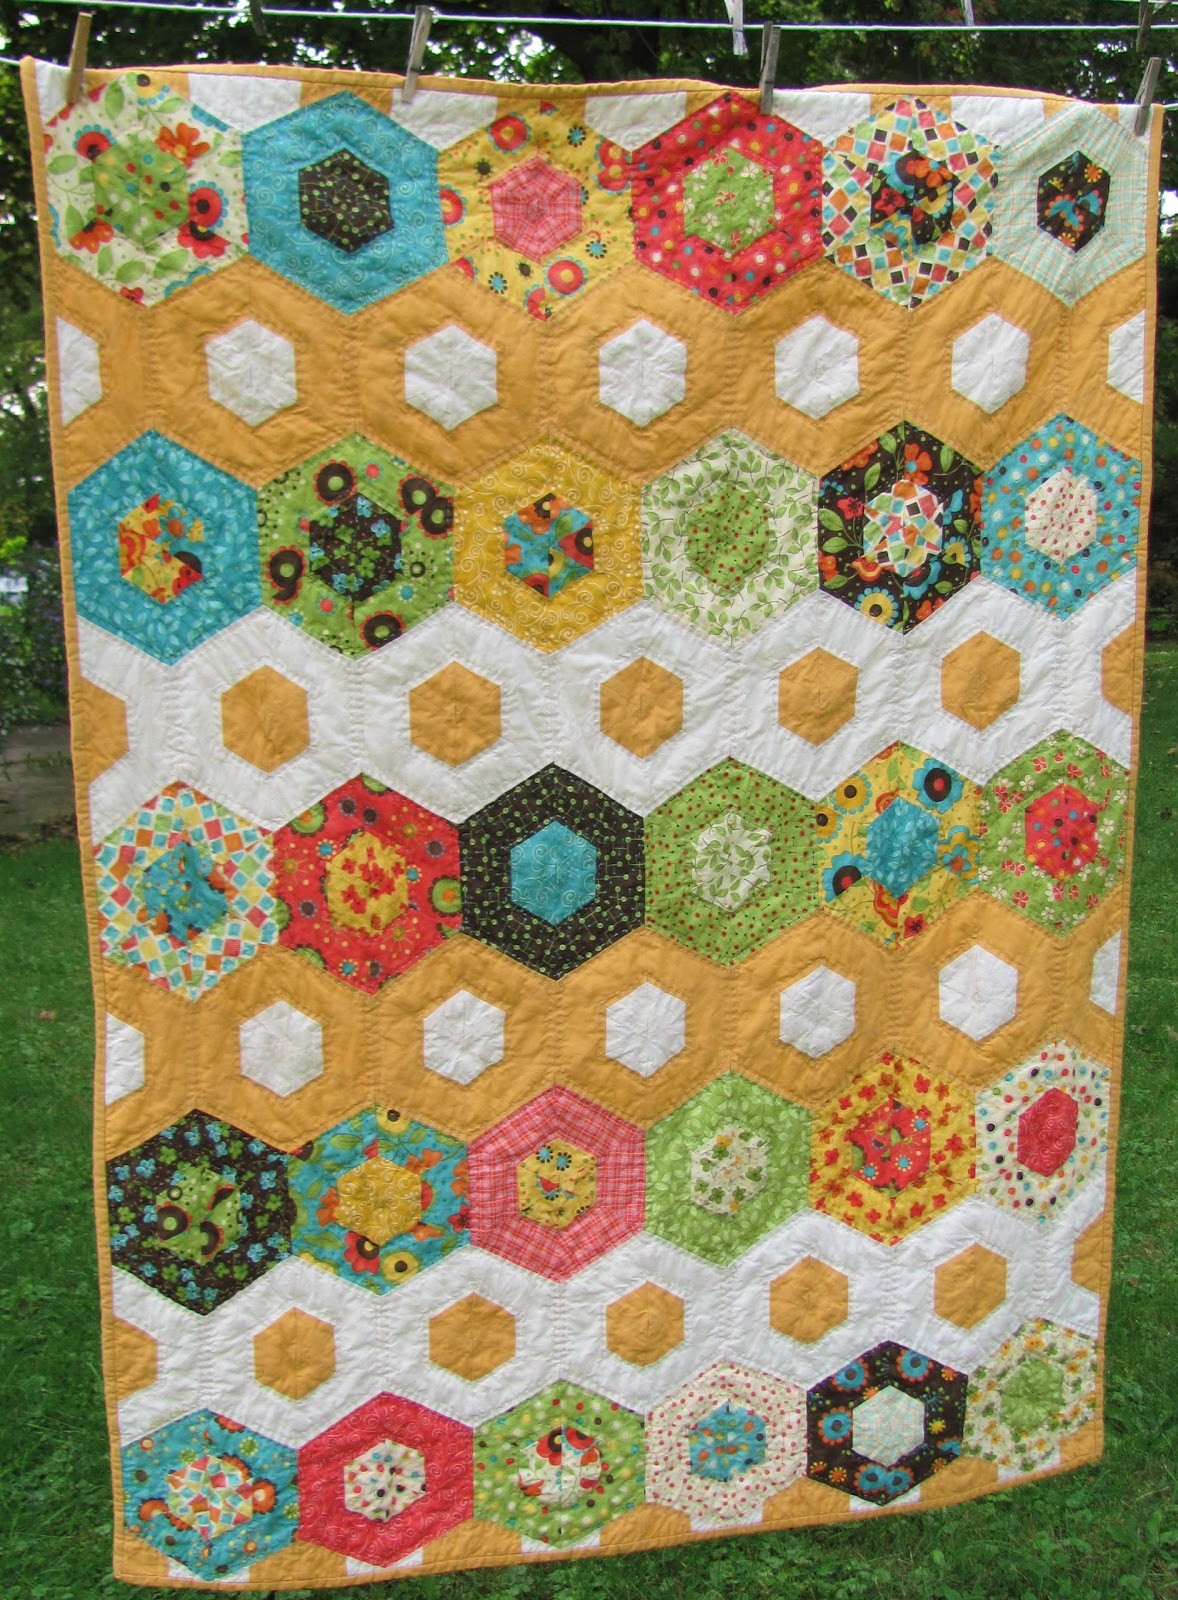 Quilting Templates Hexagon : All sizes of hexagons. tokyo_quilt (147), via Flickr.